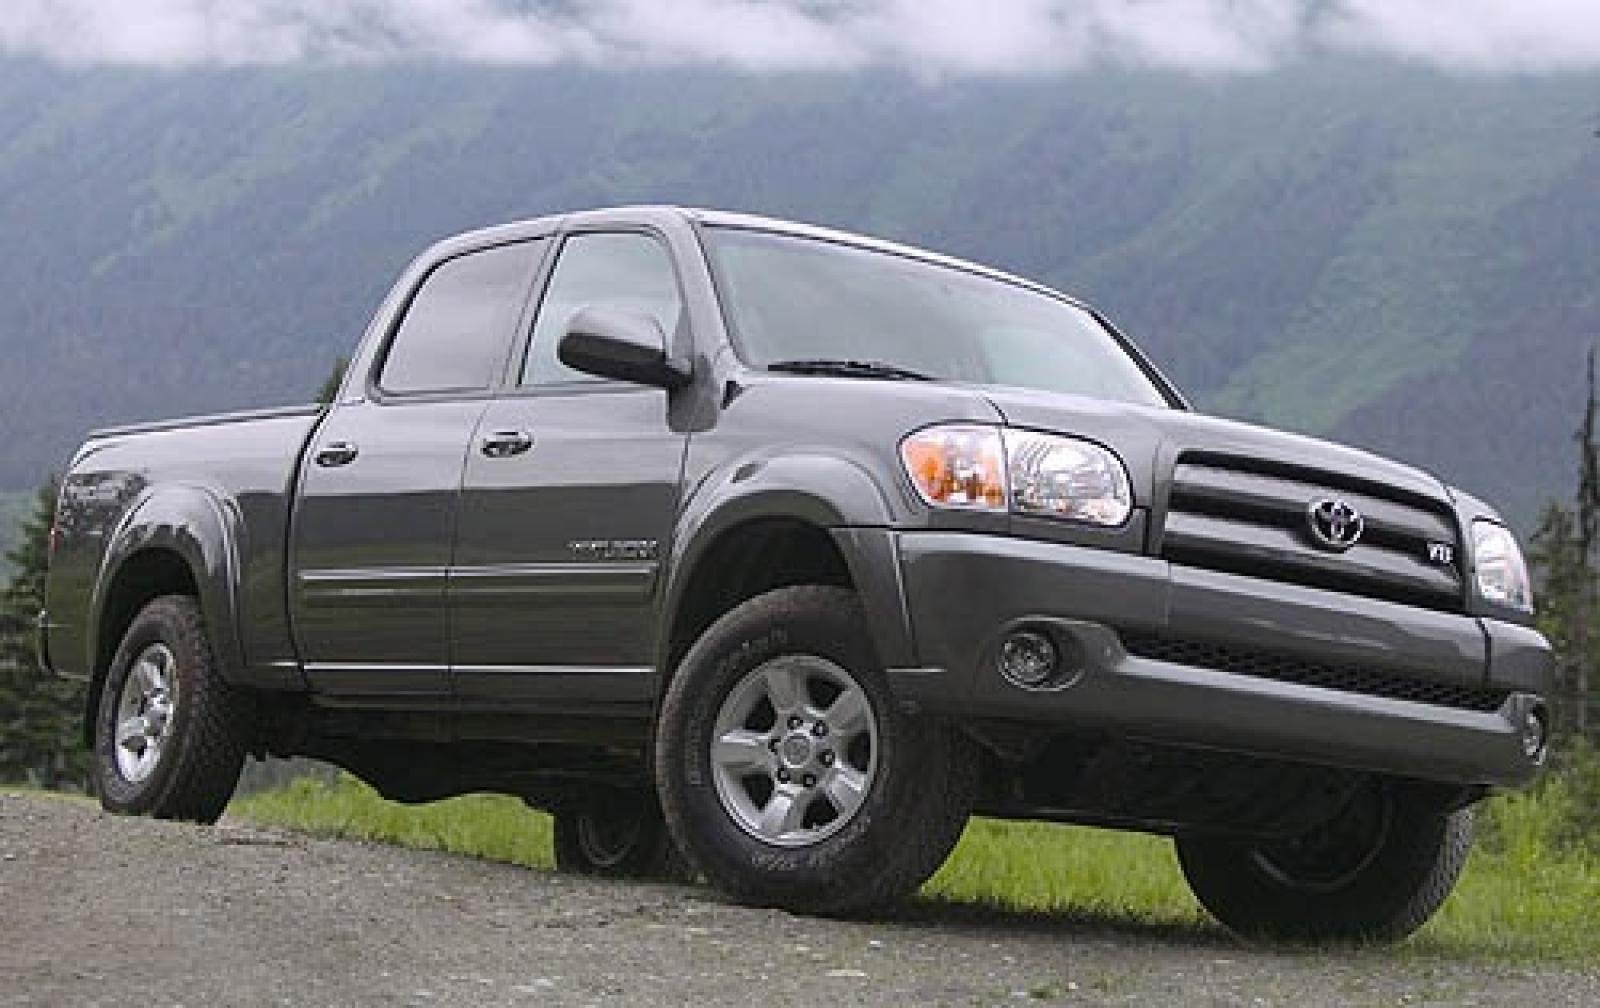 2006 toyota tundra information and photos zombiedrive. Black Bedroom Furniture Sets. Home Design Ideas